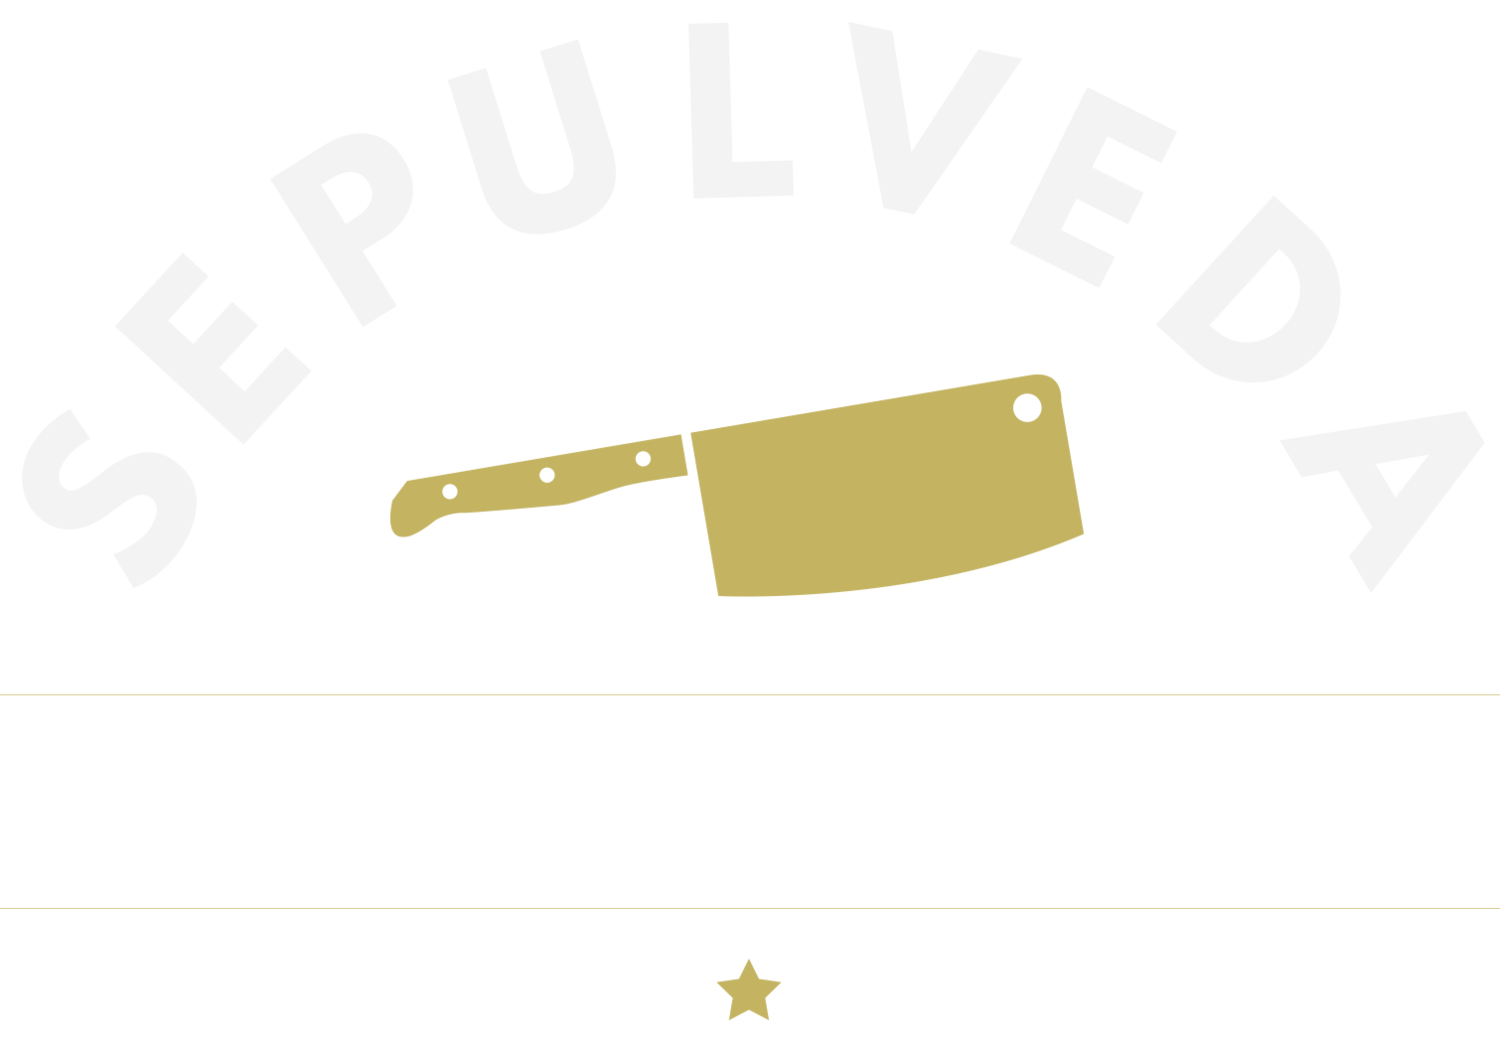 Sepulveda Meats & Provisions